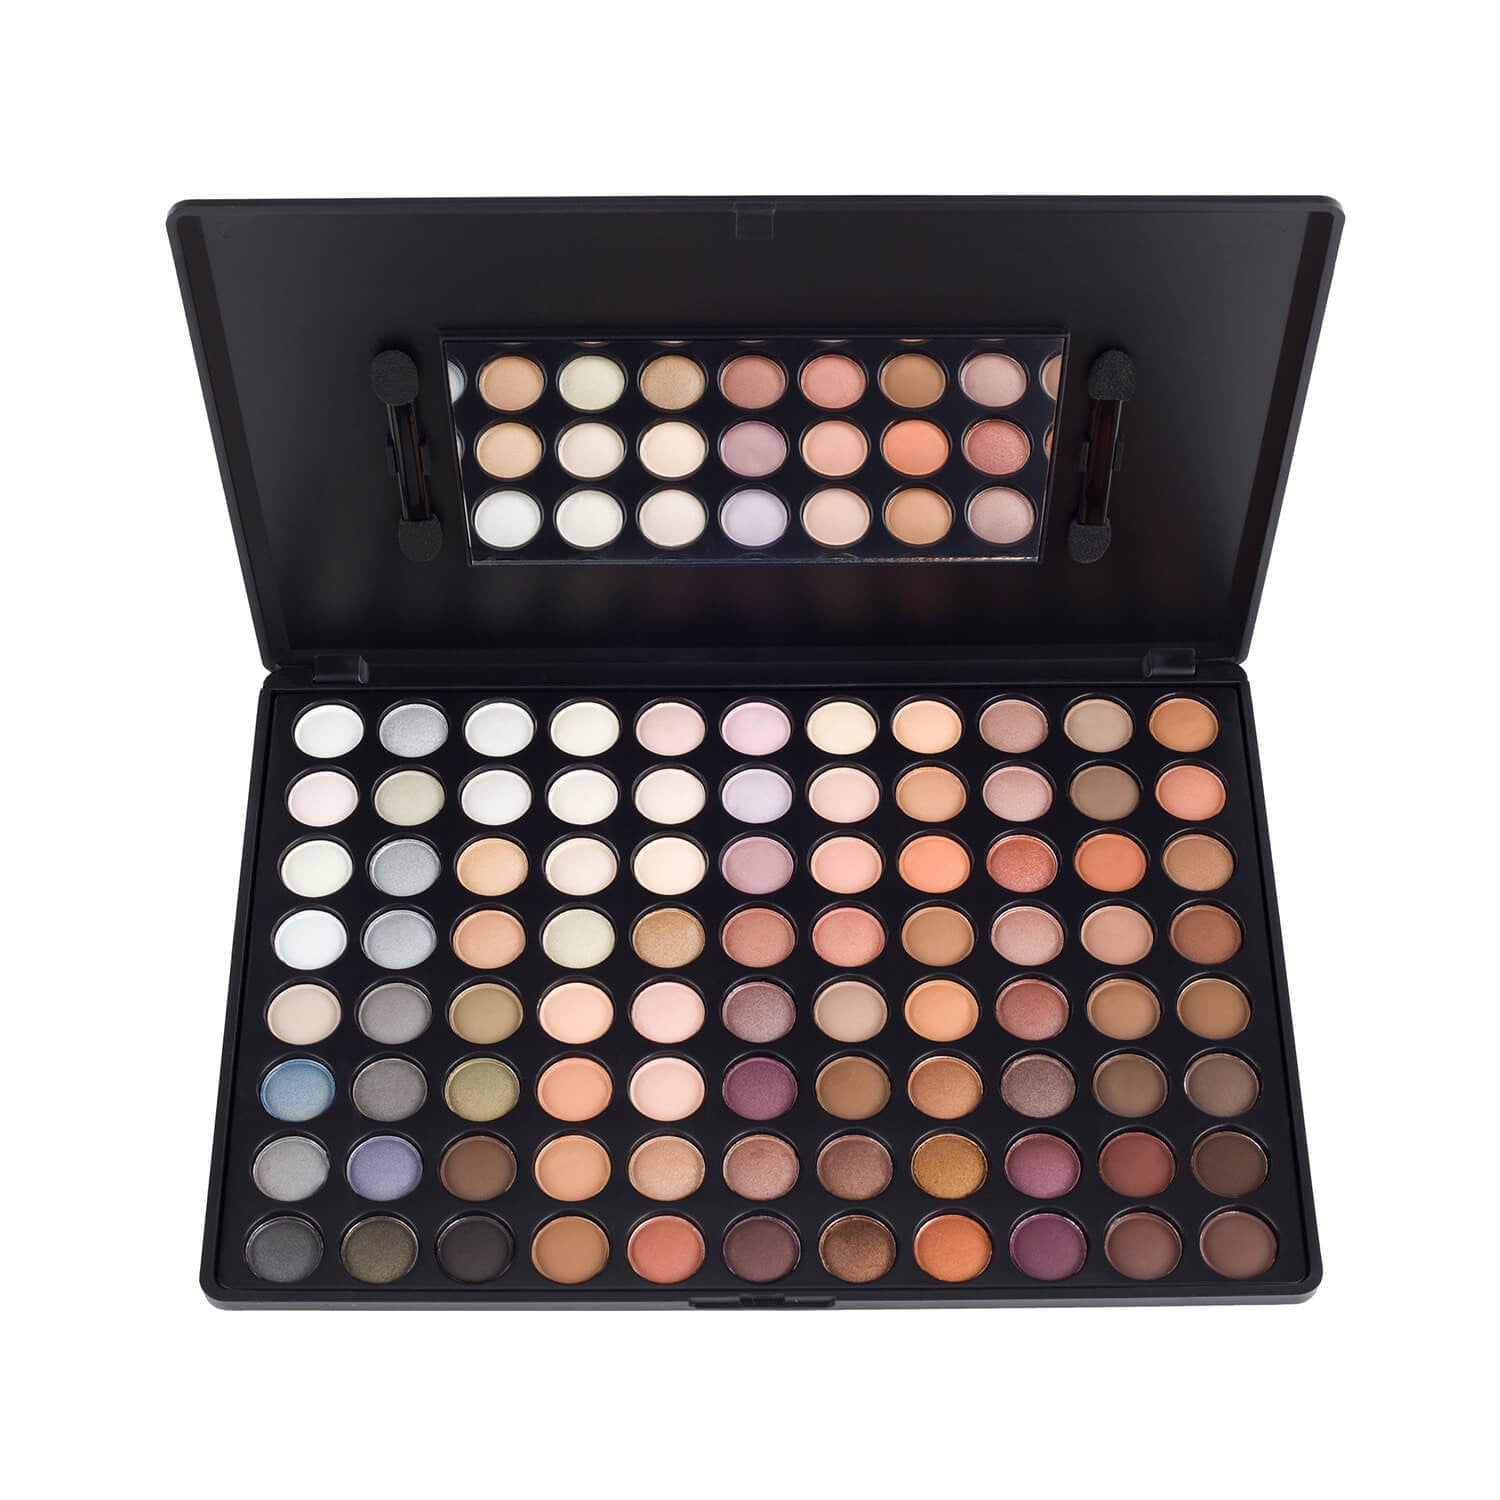 Coastal Scents 88 Warm Eyeshadow Palette